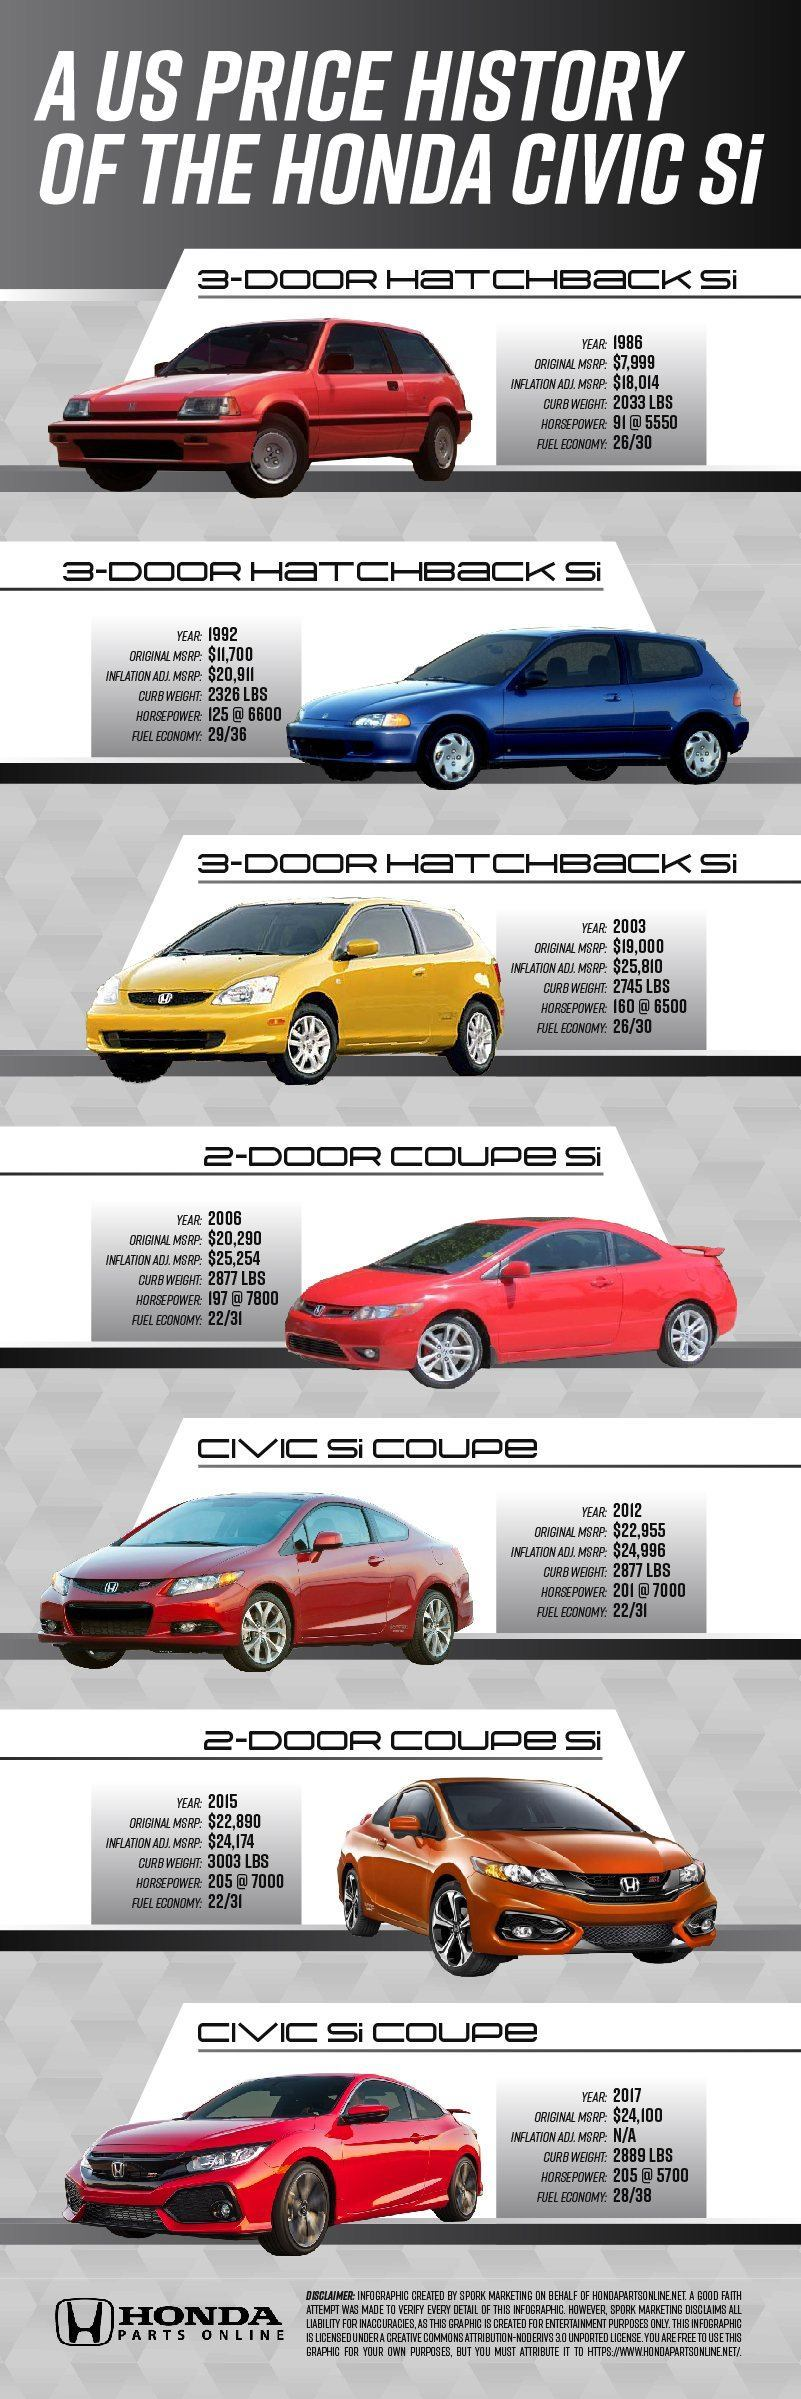 Price history of the Honda Civic Si infographic